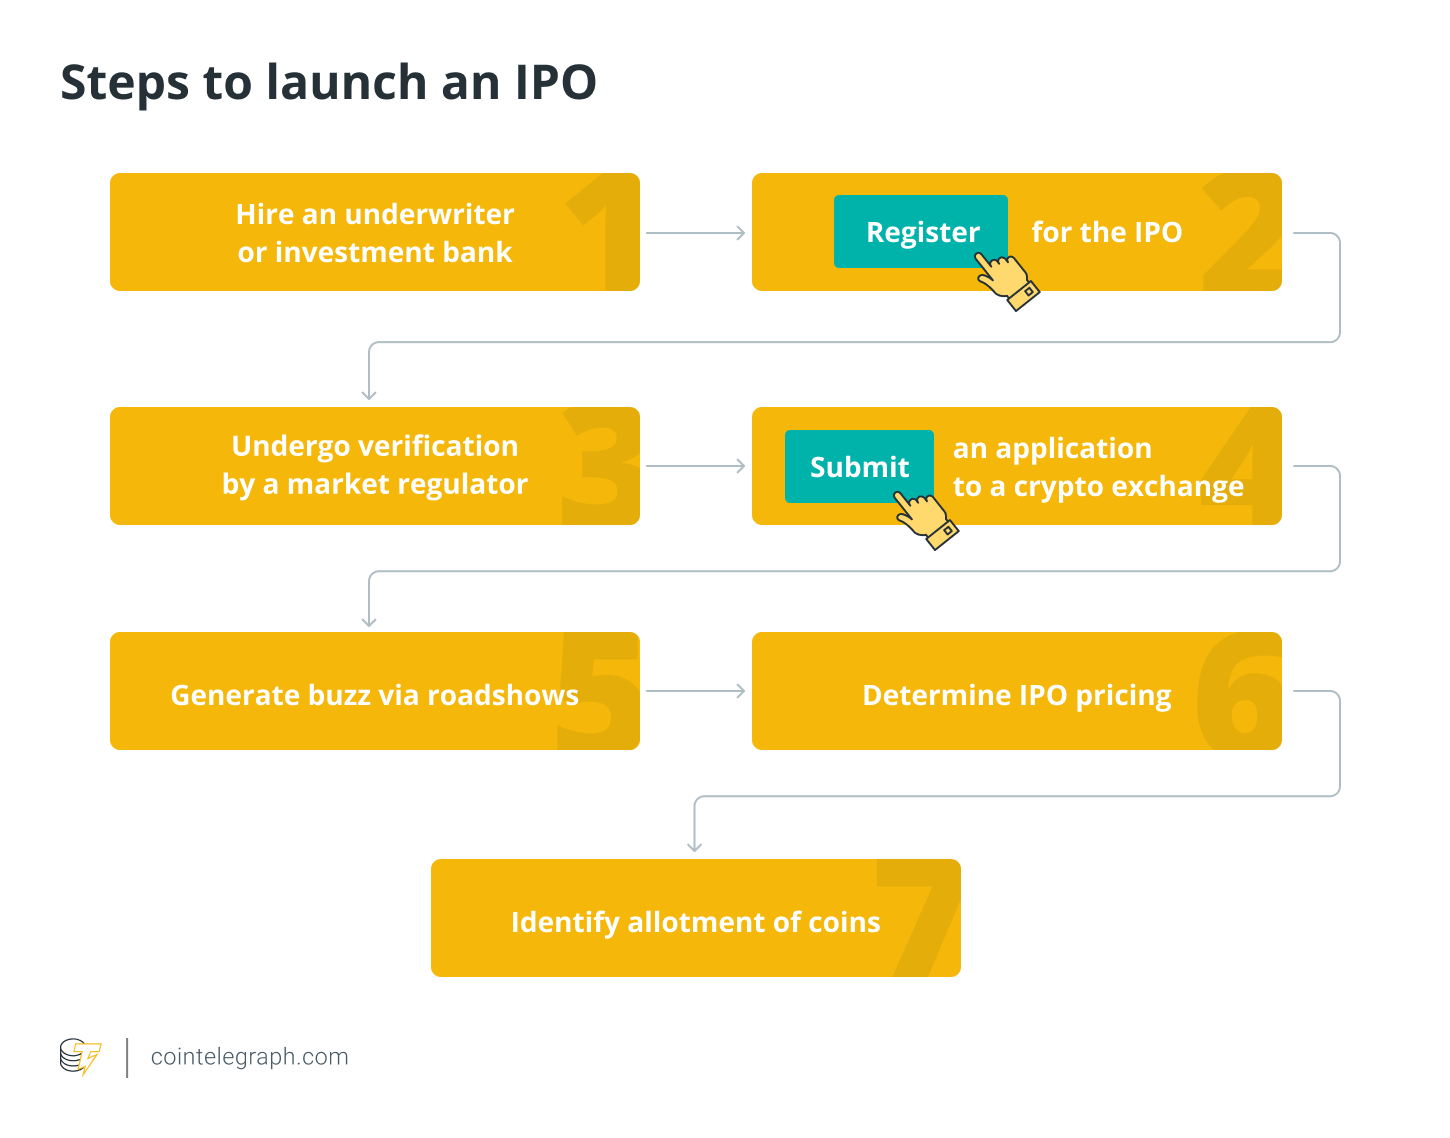 Steps to launch an IPO